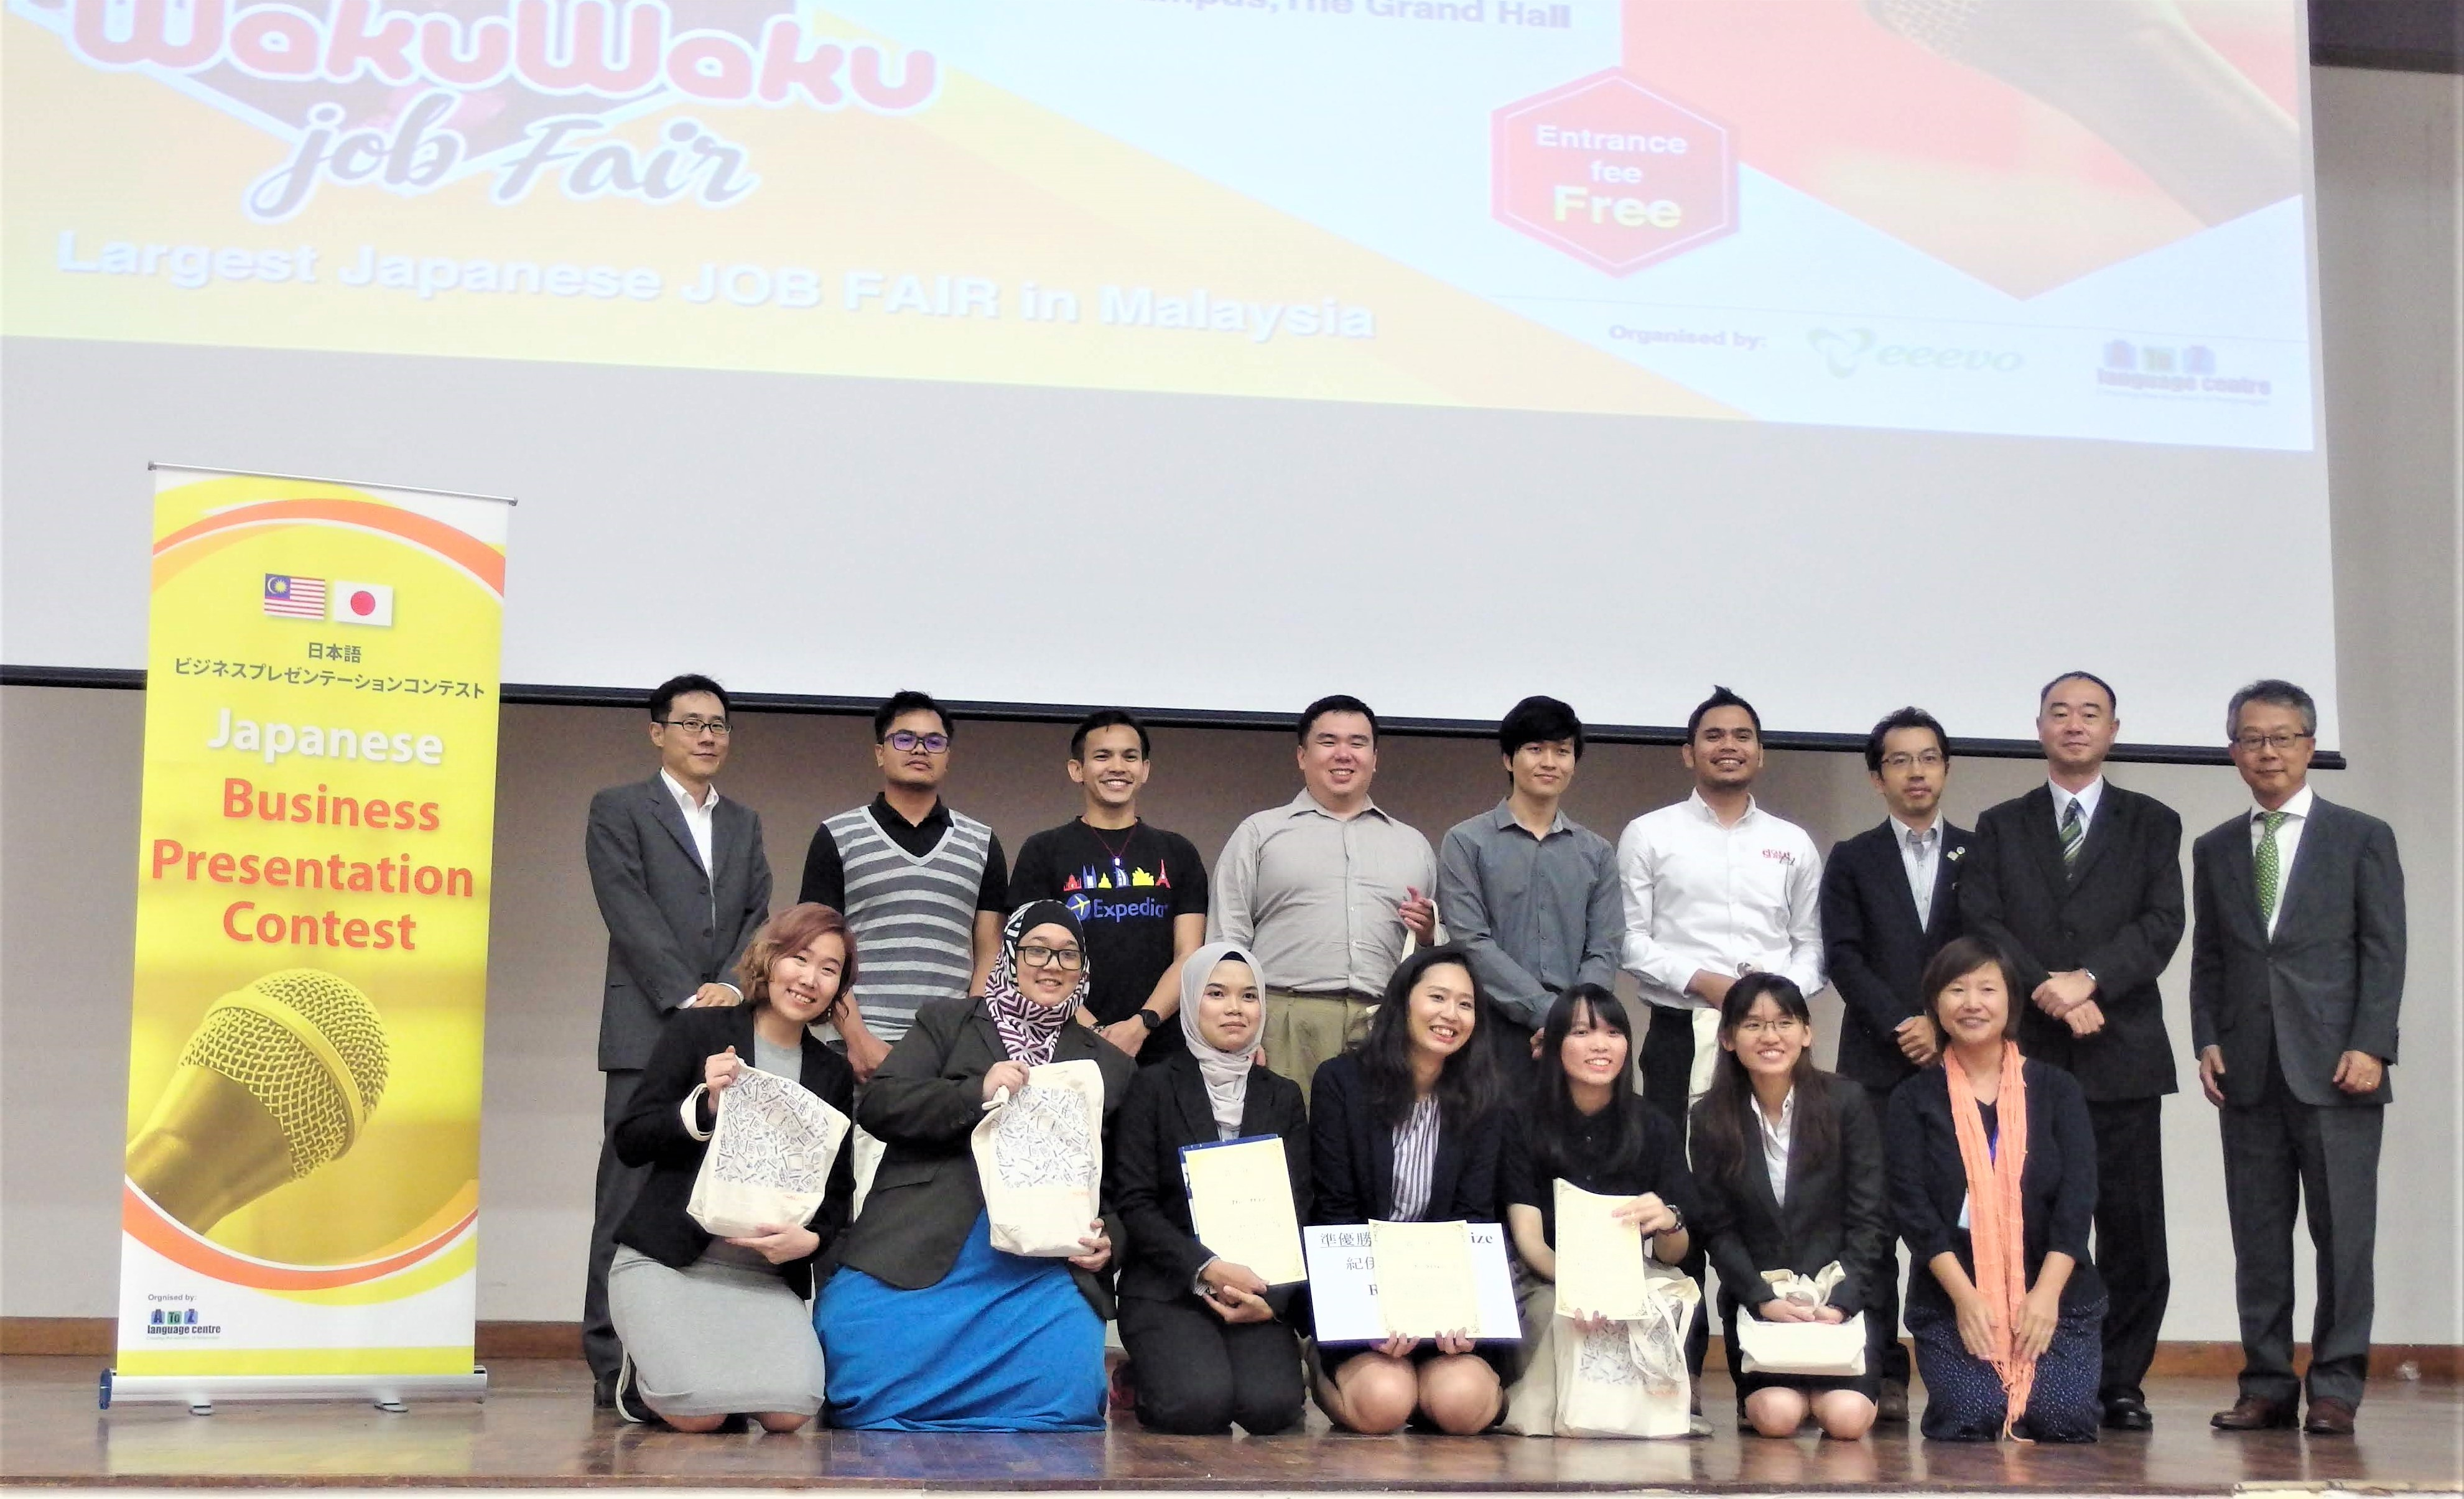 The 4th Japanese Business Presentation Contest